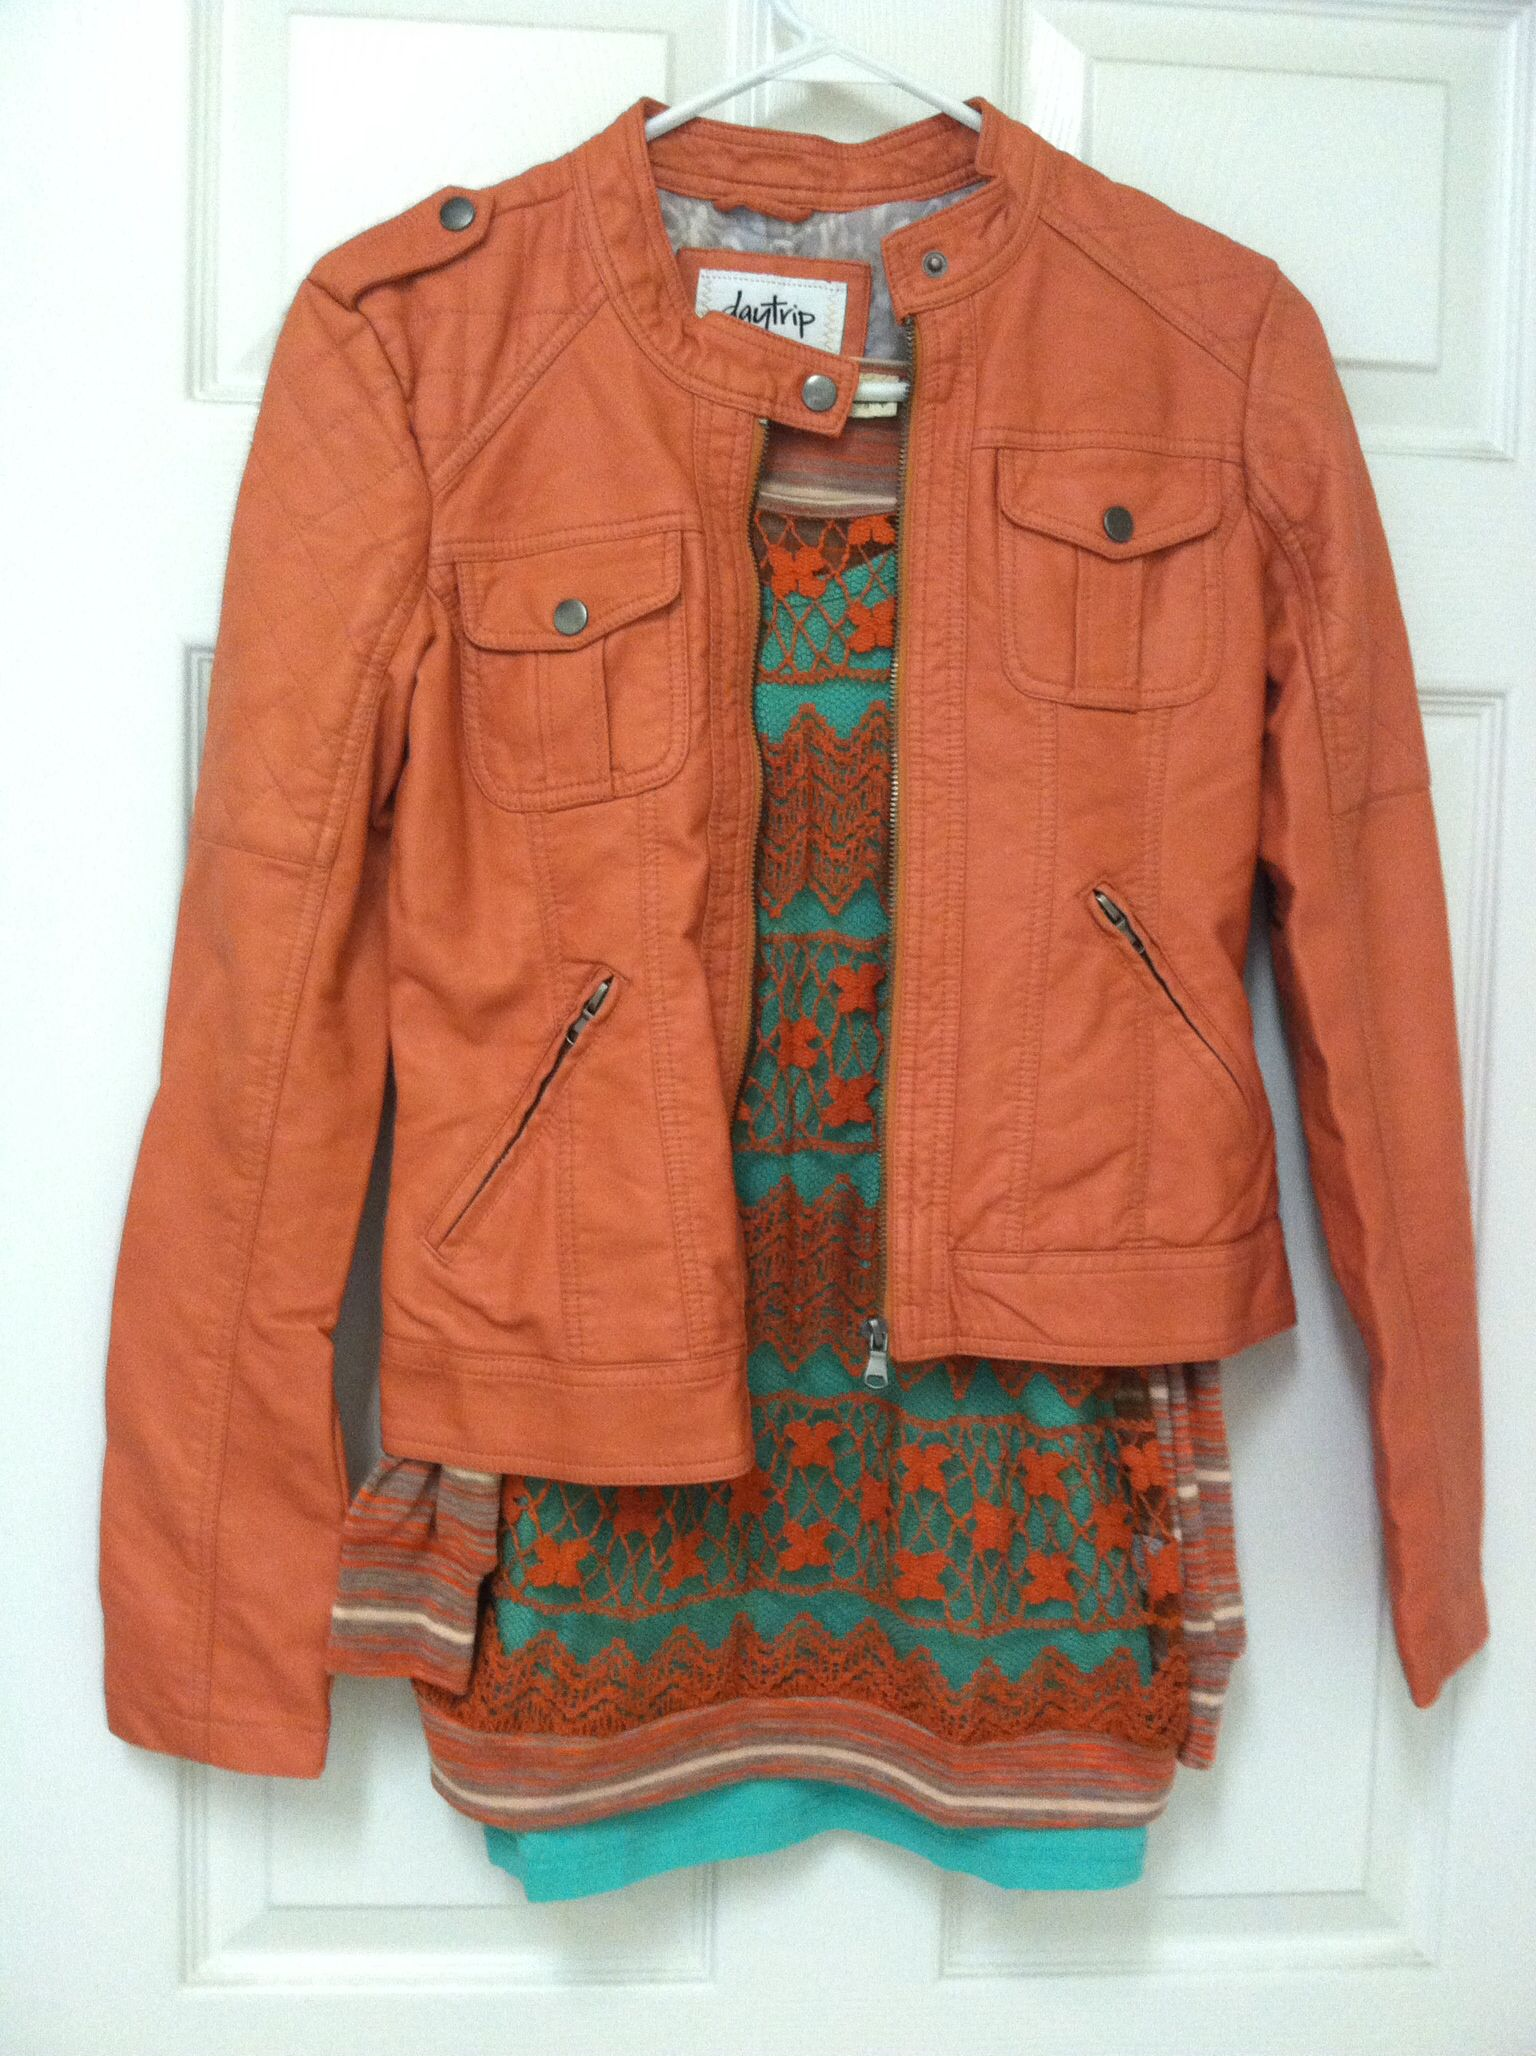 Coral jacket, lace tee and green tank